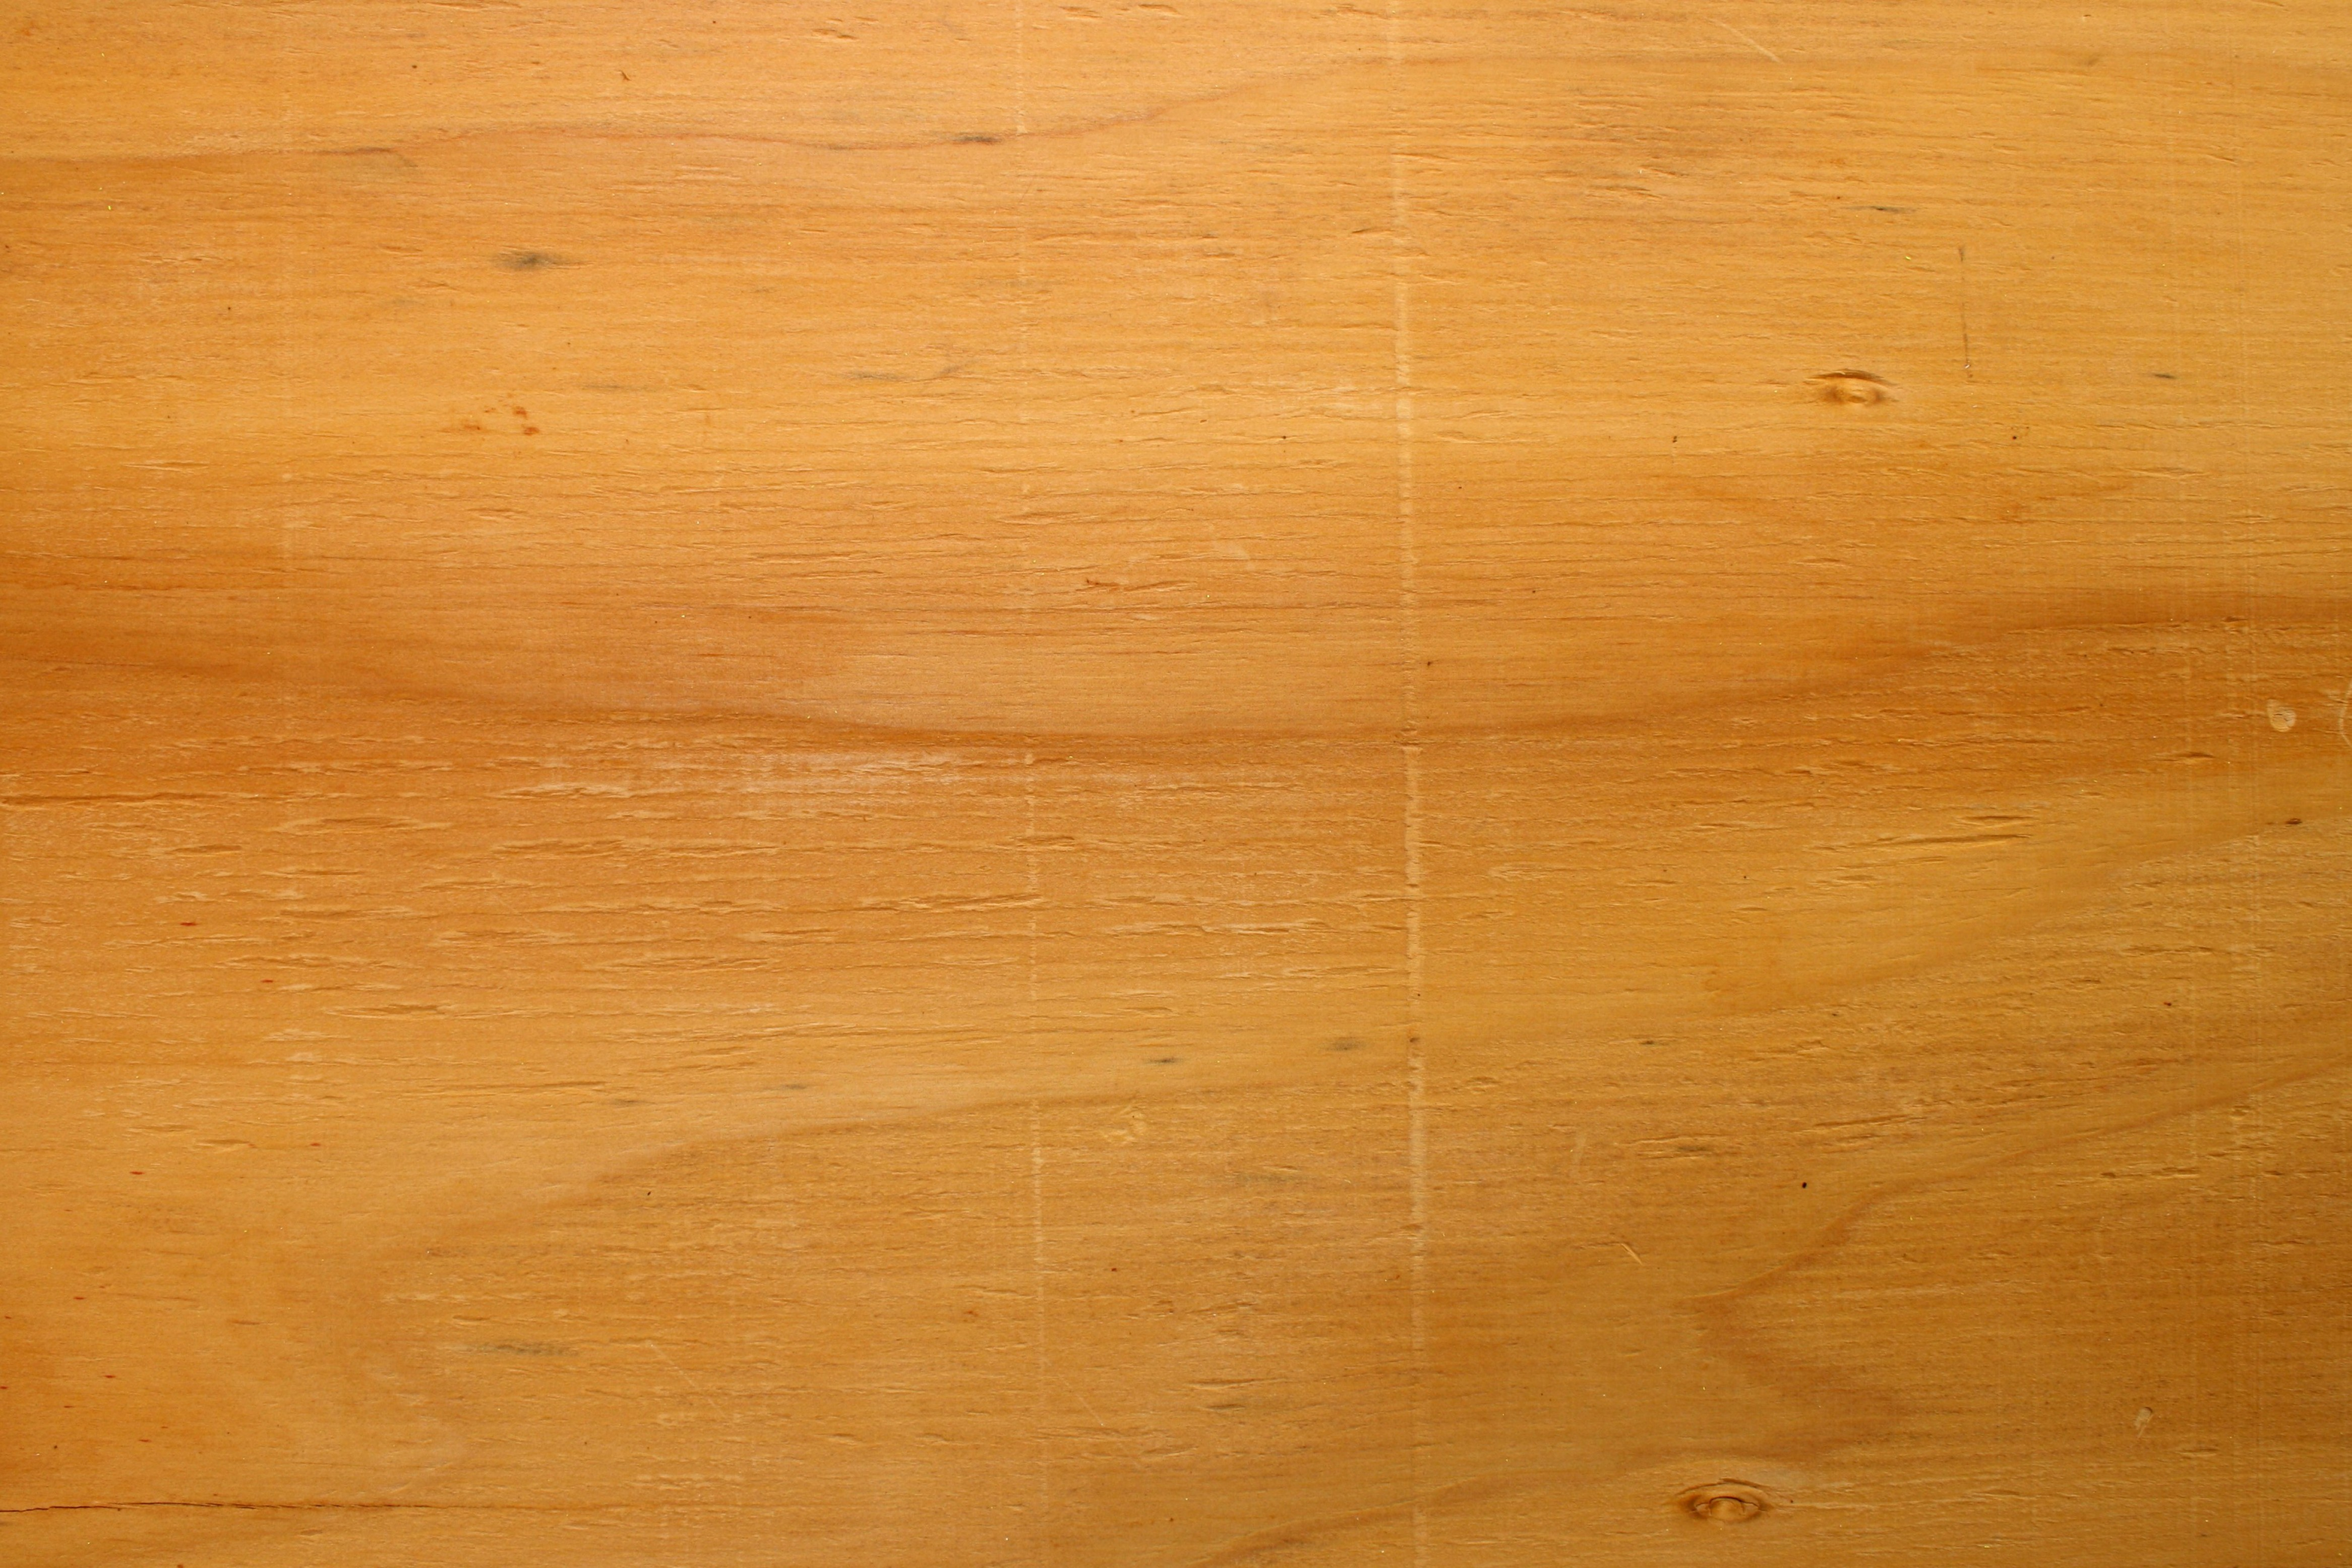 Wood Grain Texture Vector: Plywood Close Up Texture With Horizontal Wood Grain